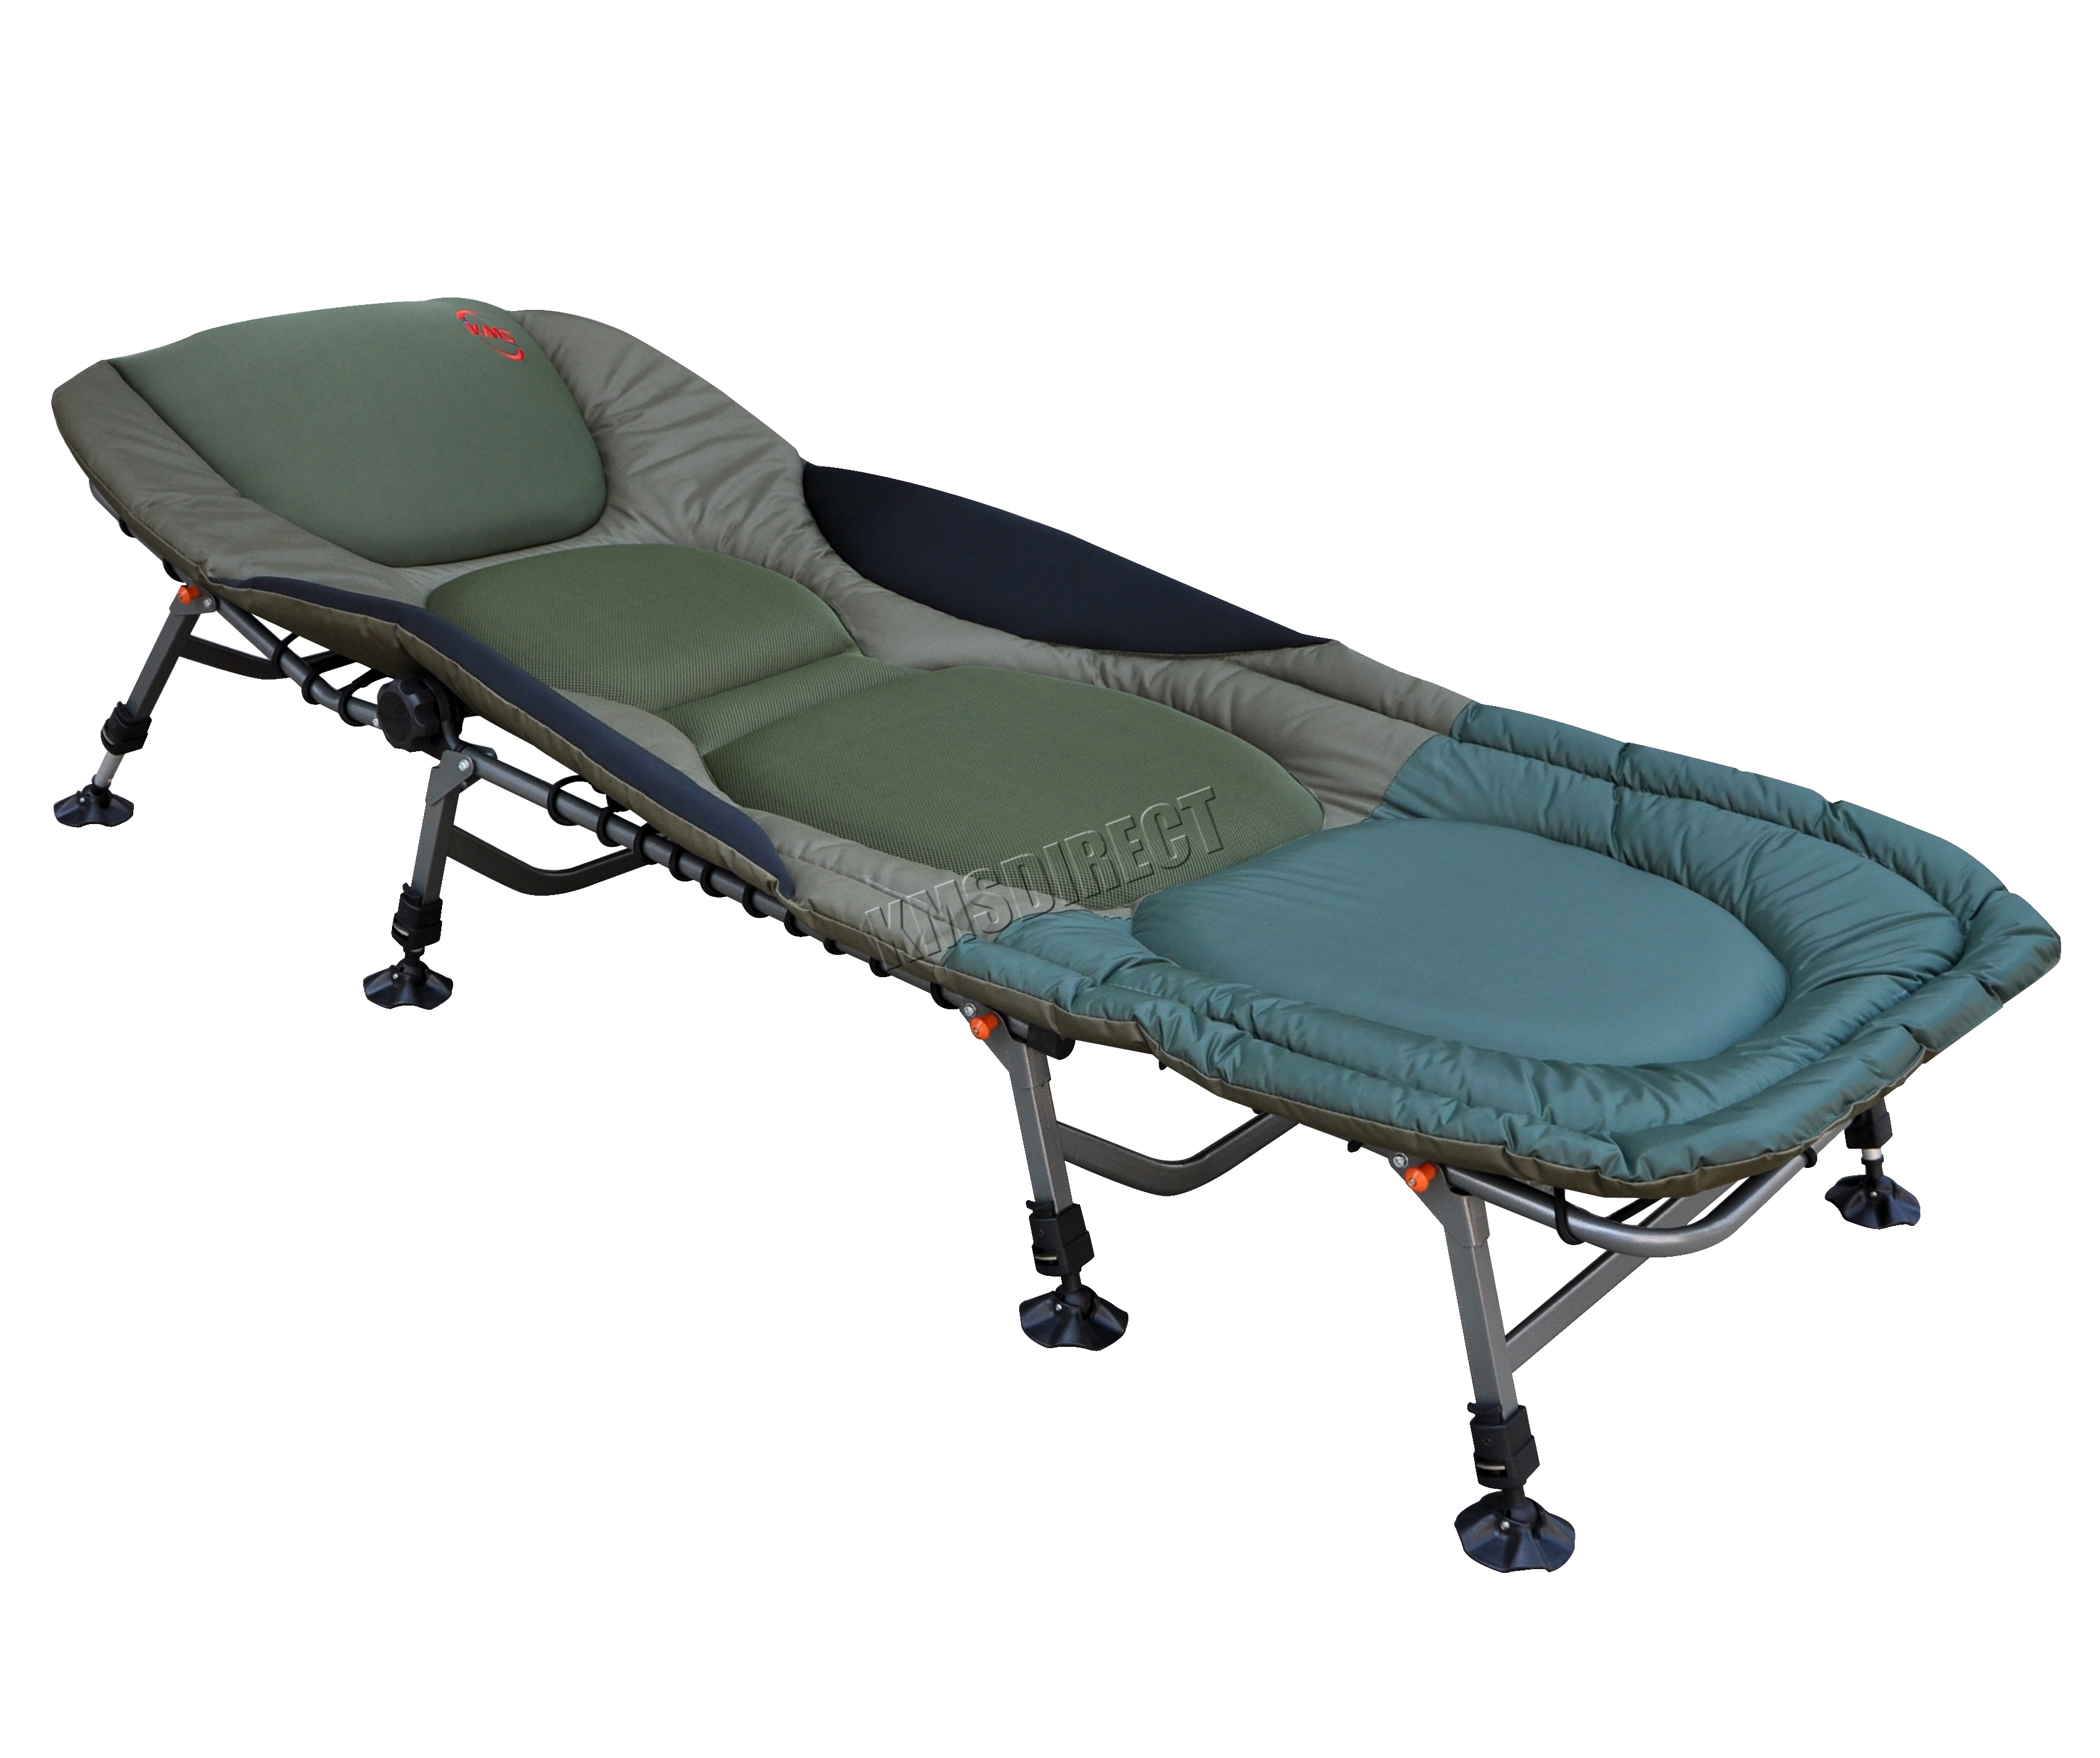 fishing chair uk linenfold cover portable carp bed bedchair camping 8 adjustable legs pillow fb-022 | ebay